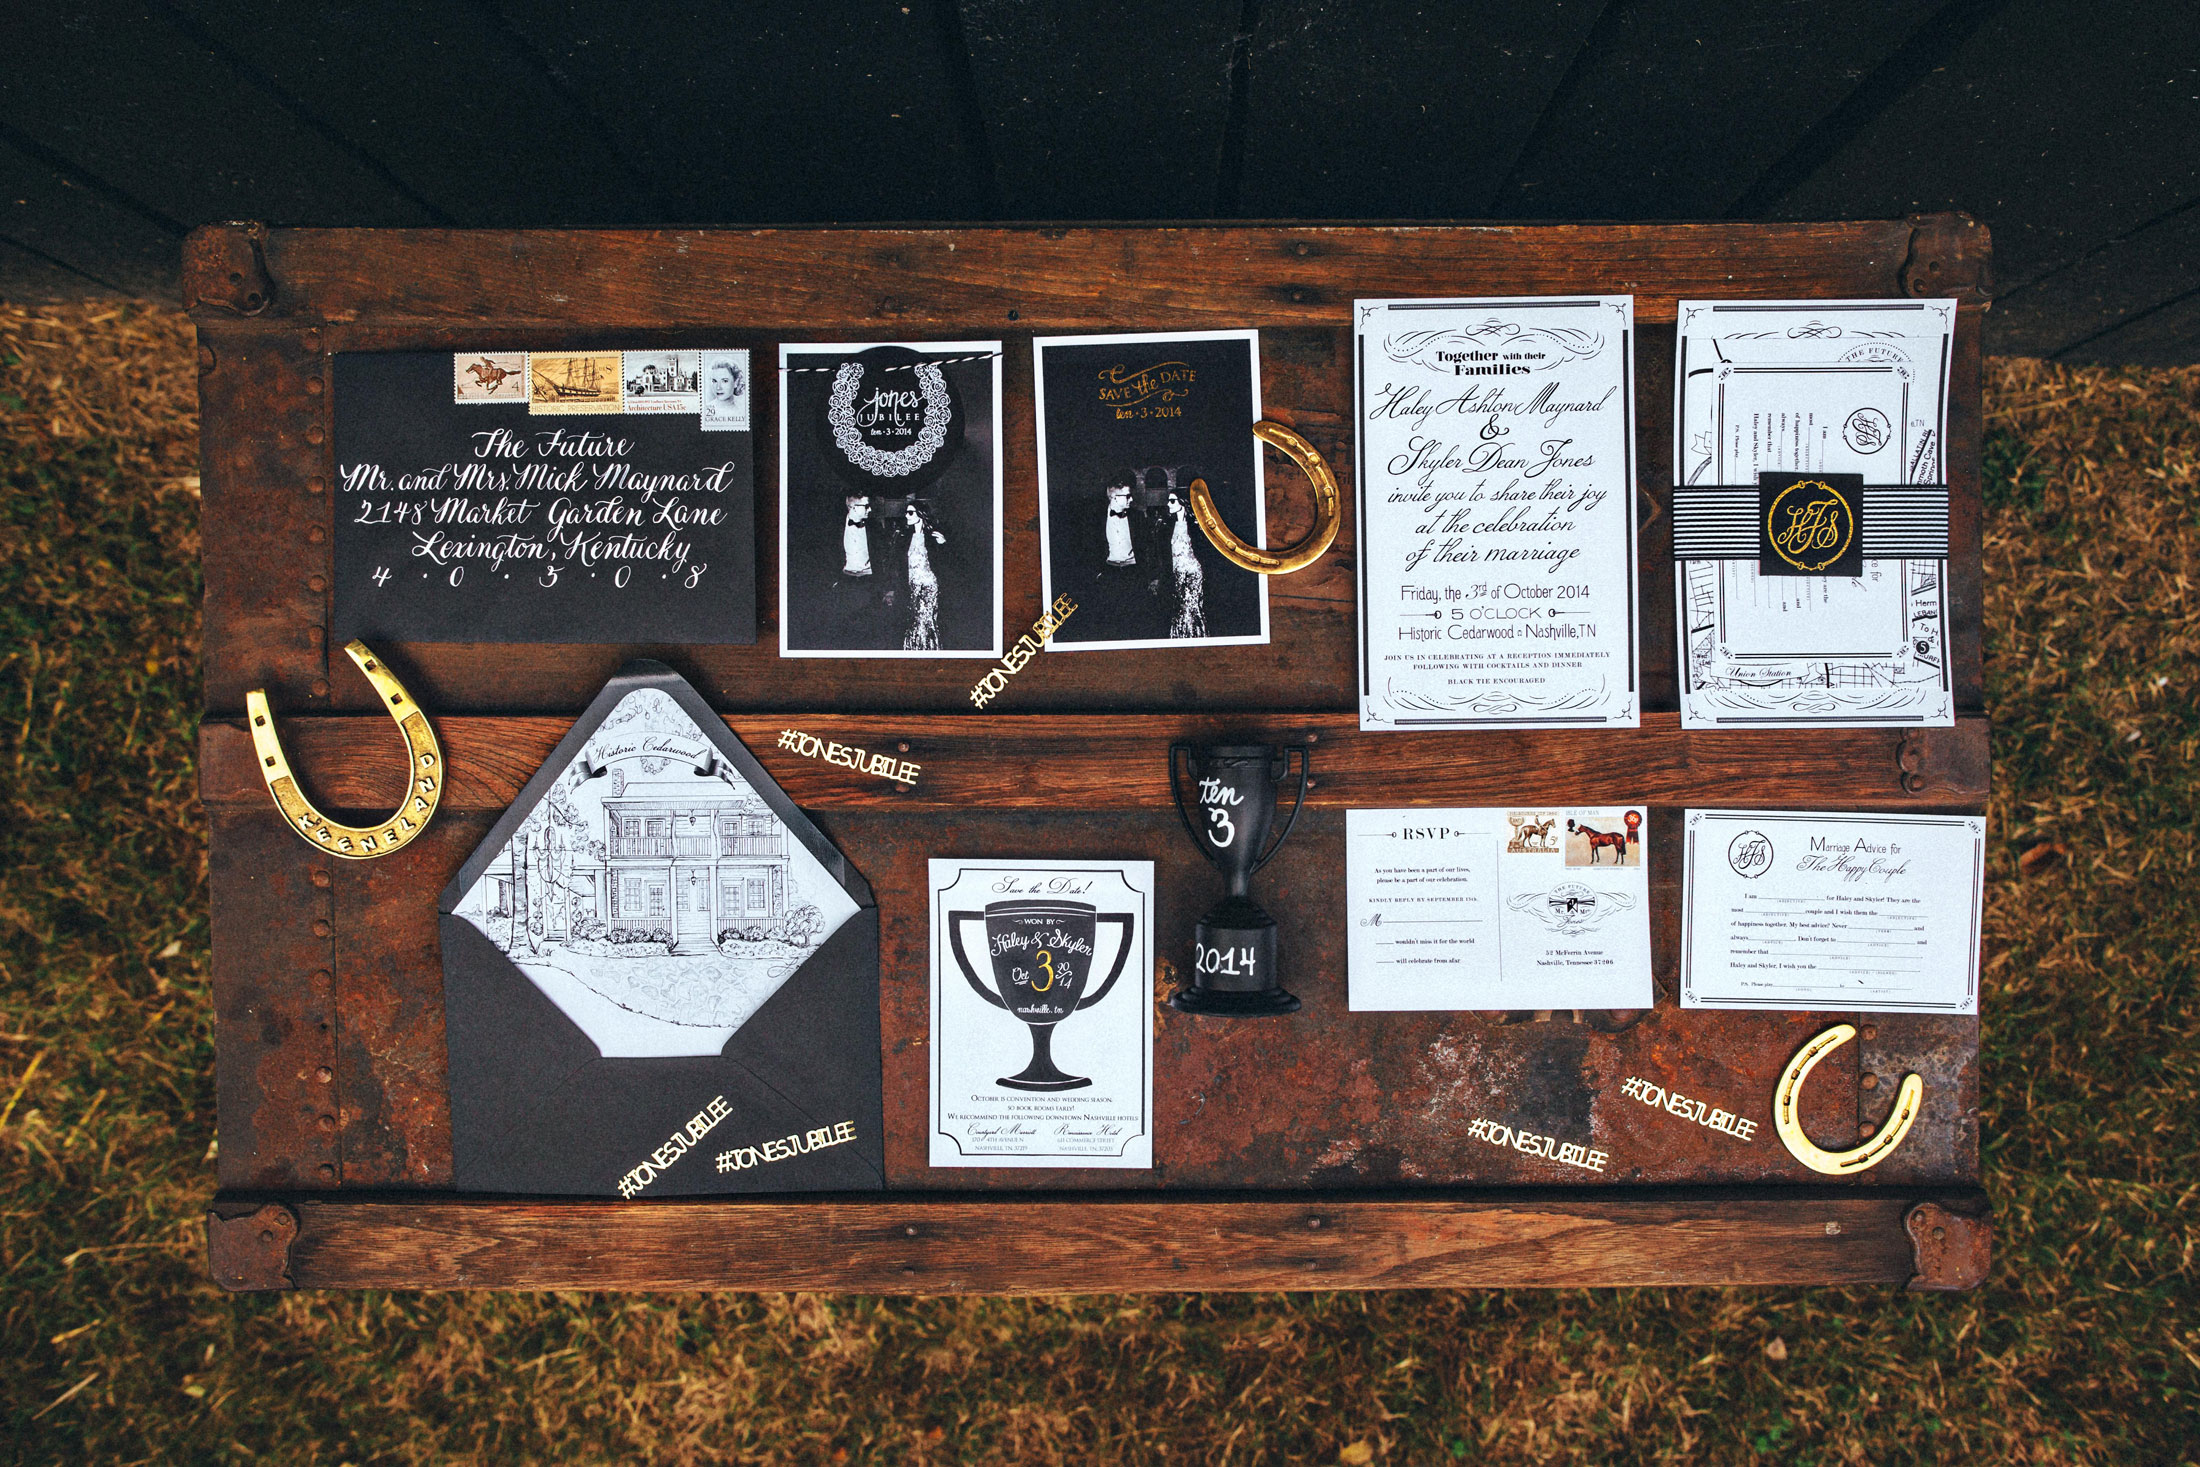 Me & Mr. Jones Wedding, Black White and Gold Wedding, Rustic Glam Wedding Invitations, Hand Drawn Wedding Map, White Calligraphy on Black Envelopes